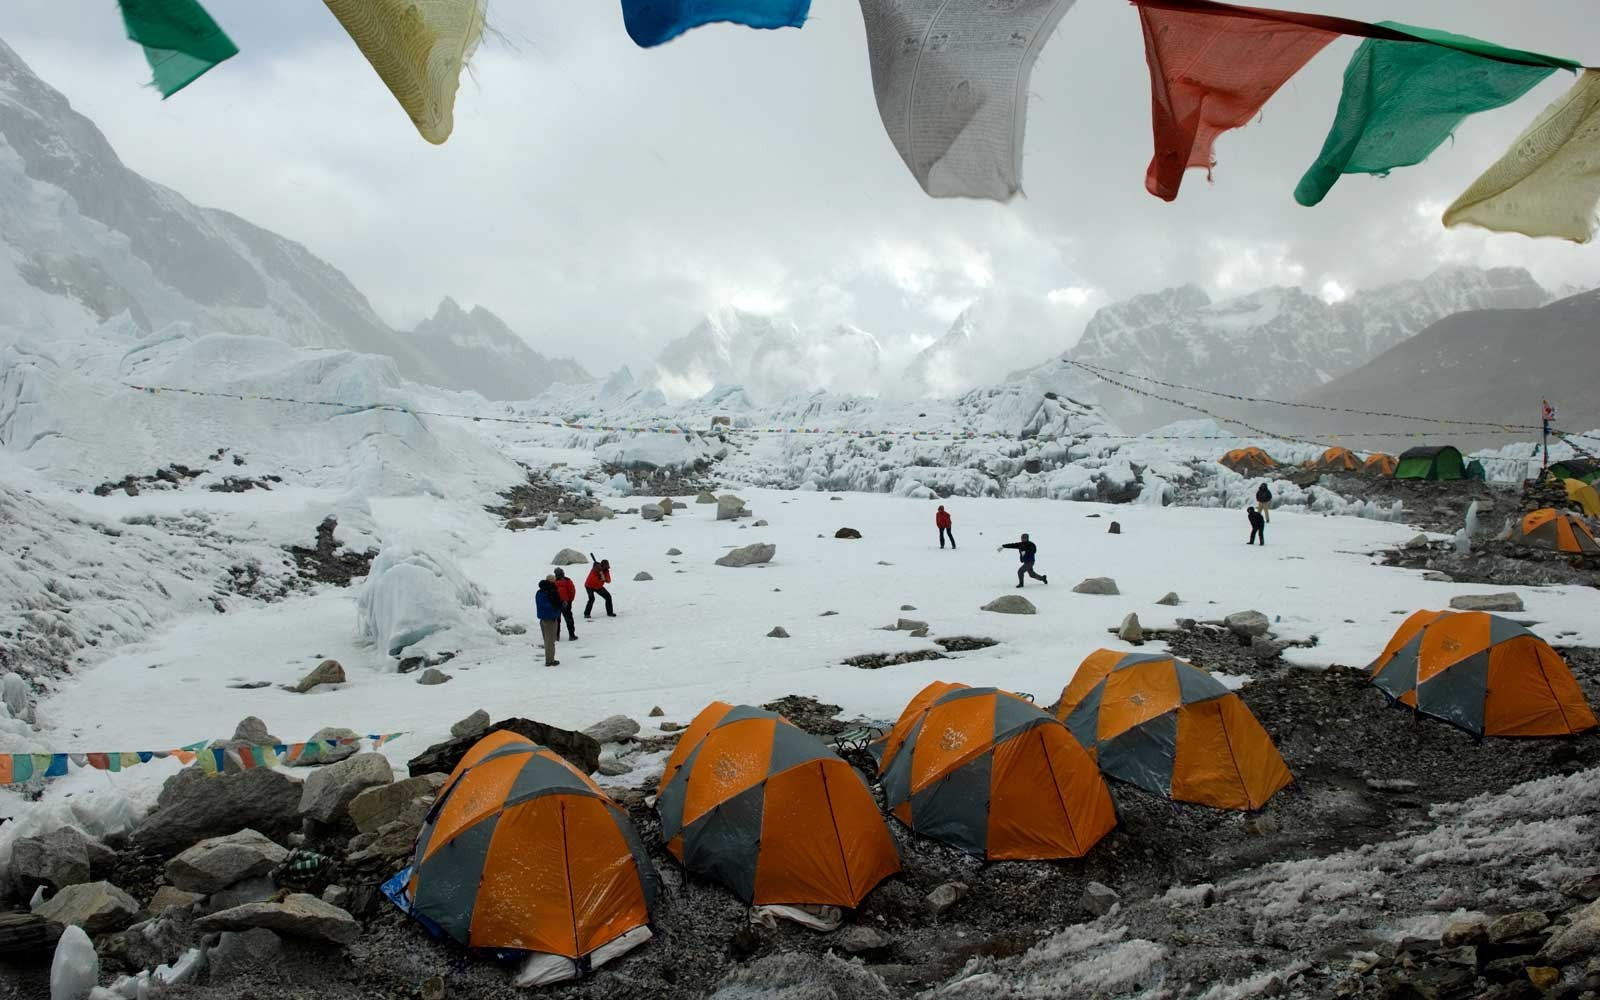 Nepalese government tightens climbing rules, requires proof of high-altitude experience before Everest